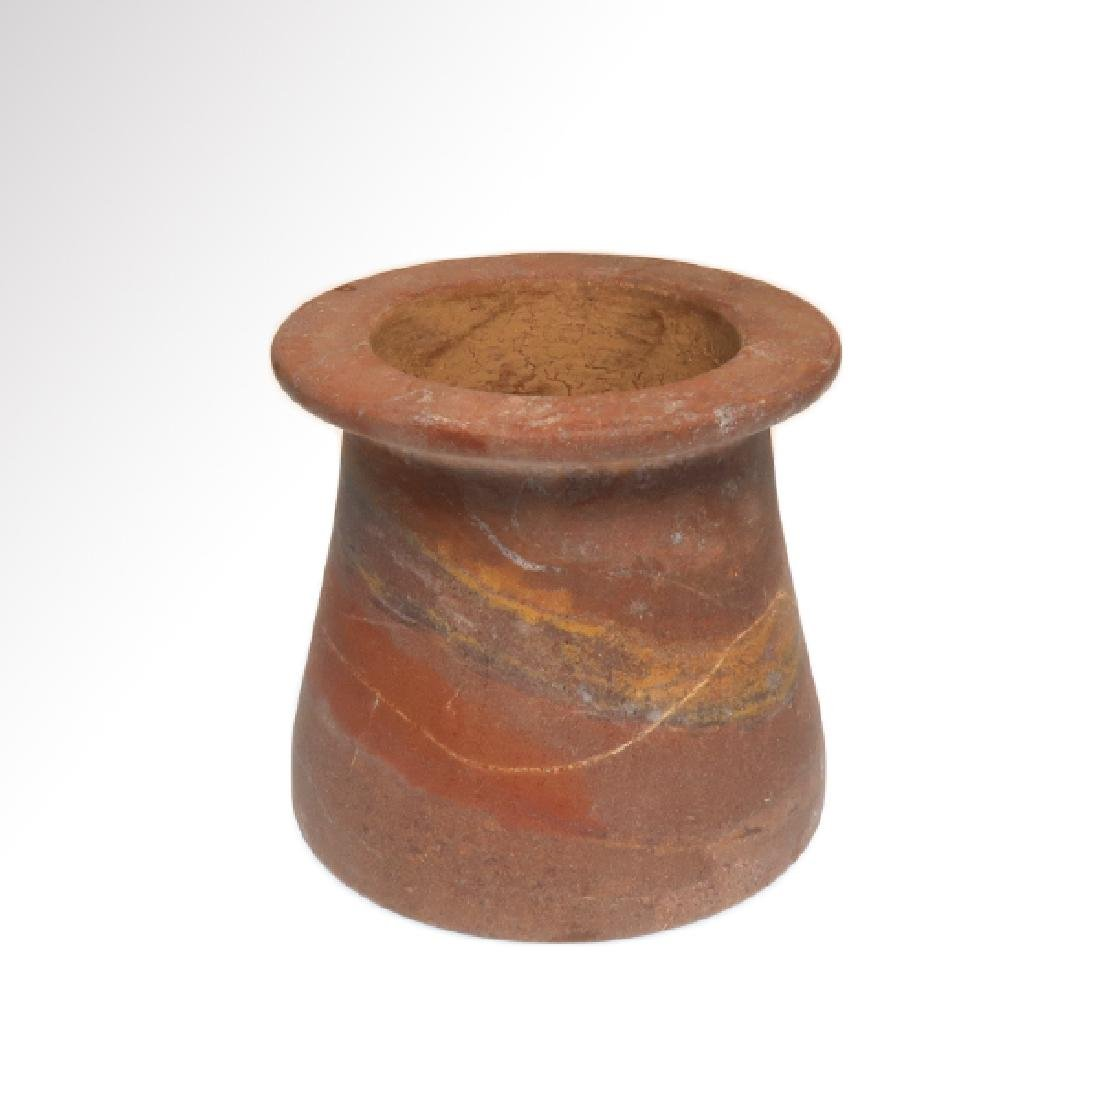 Egyptian Red Marble Vessel Jar, Early Dynastic, c. 2700 - 3